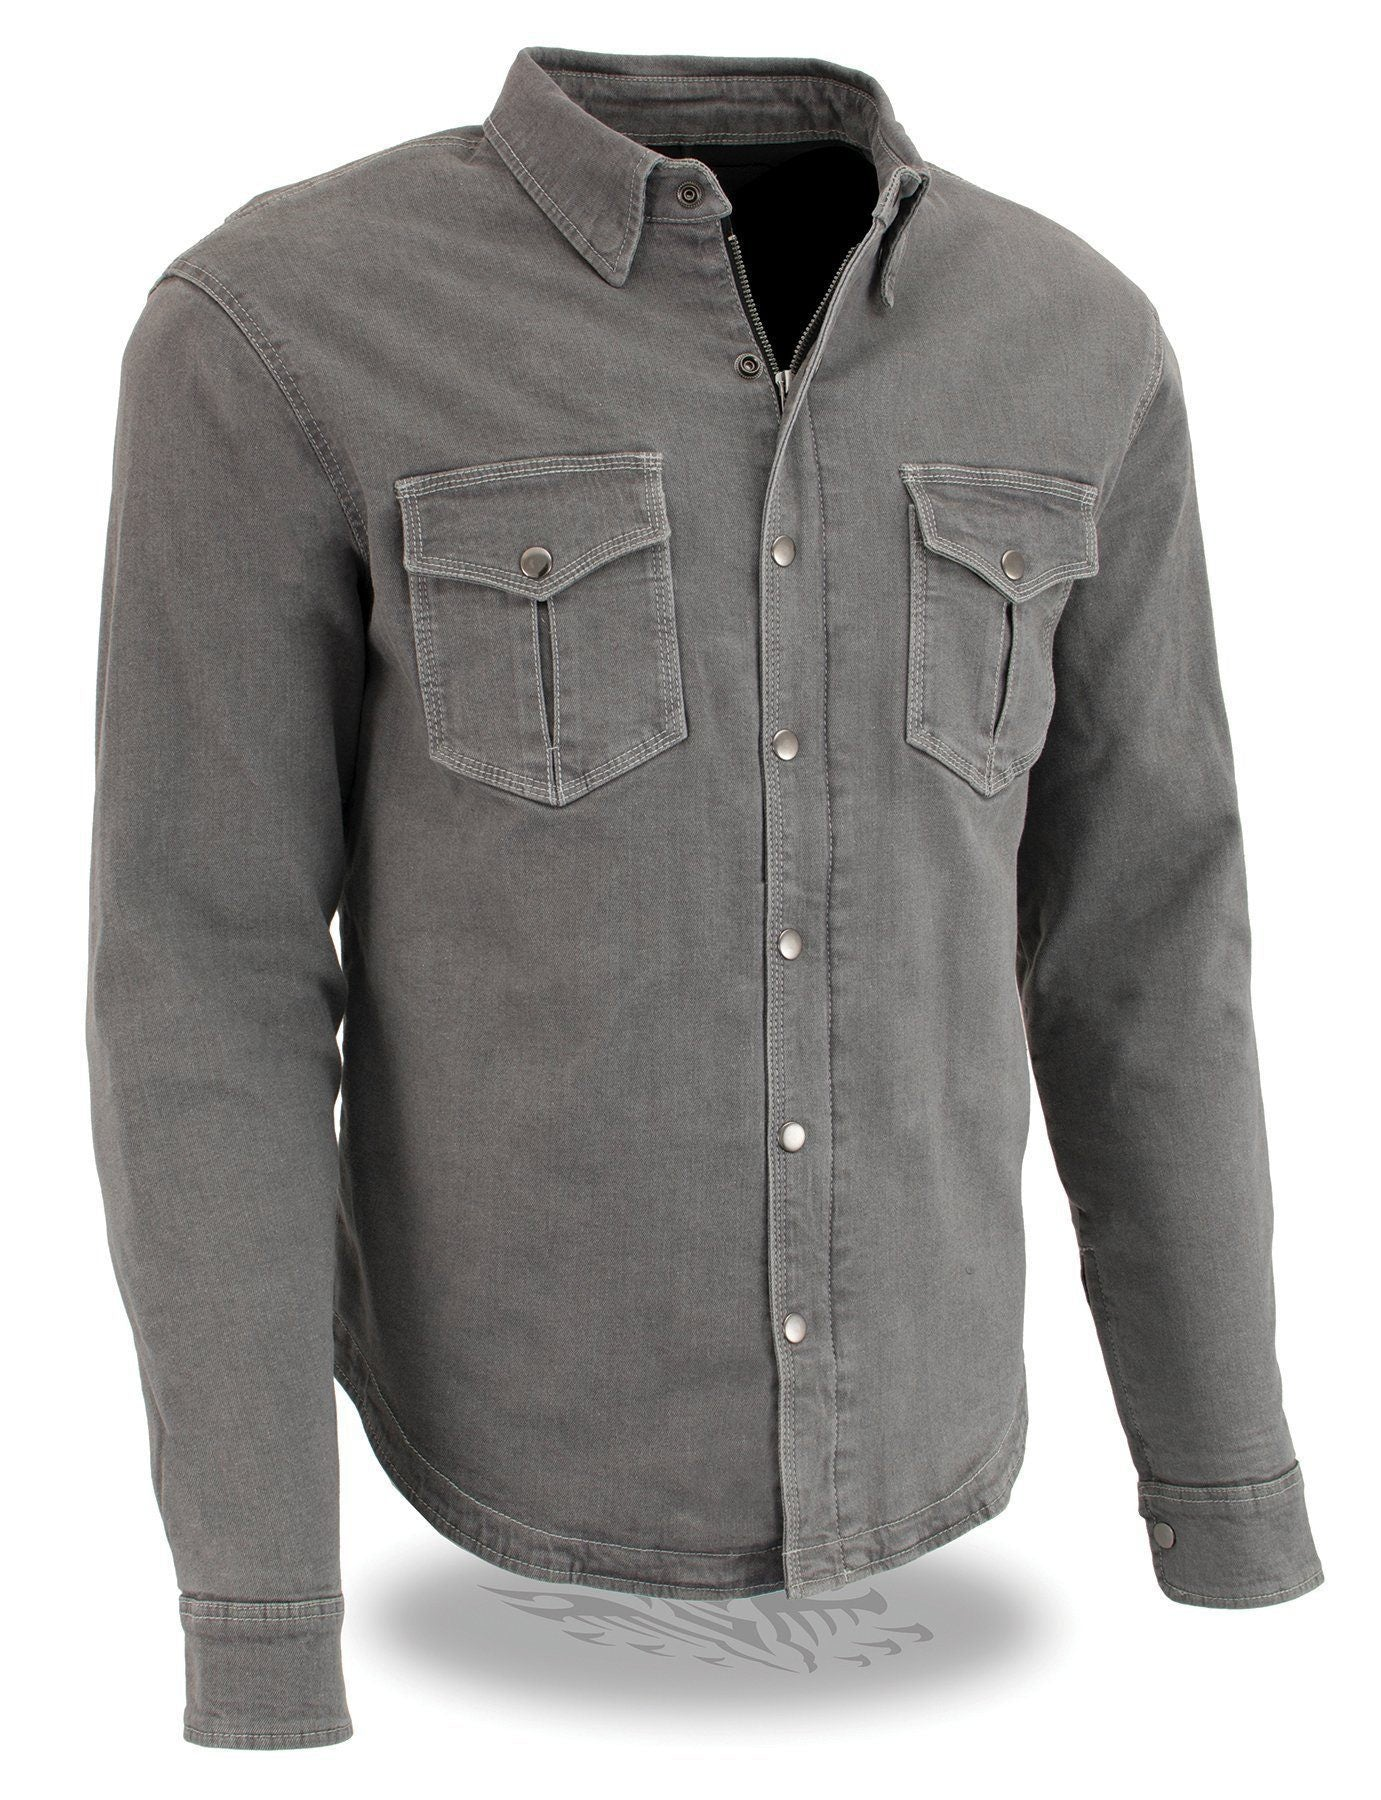 Milwaukee Performance  MPM1621 Men's Armored Denim Biker Shirt with Aramid® by DuPont™ Fibers